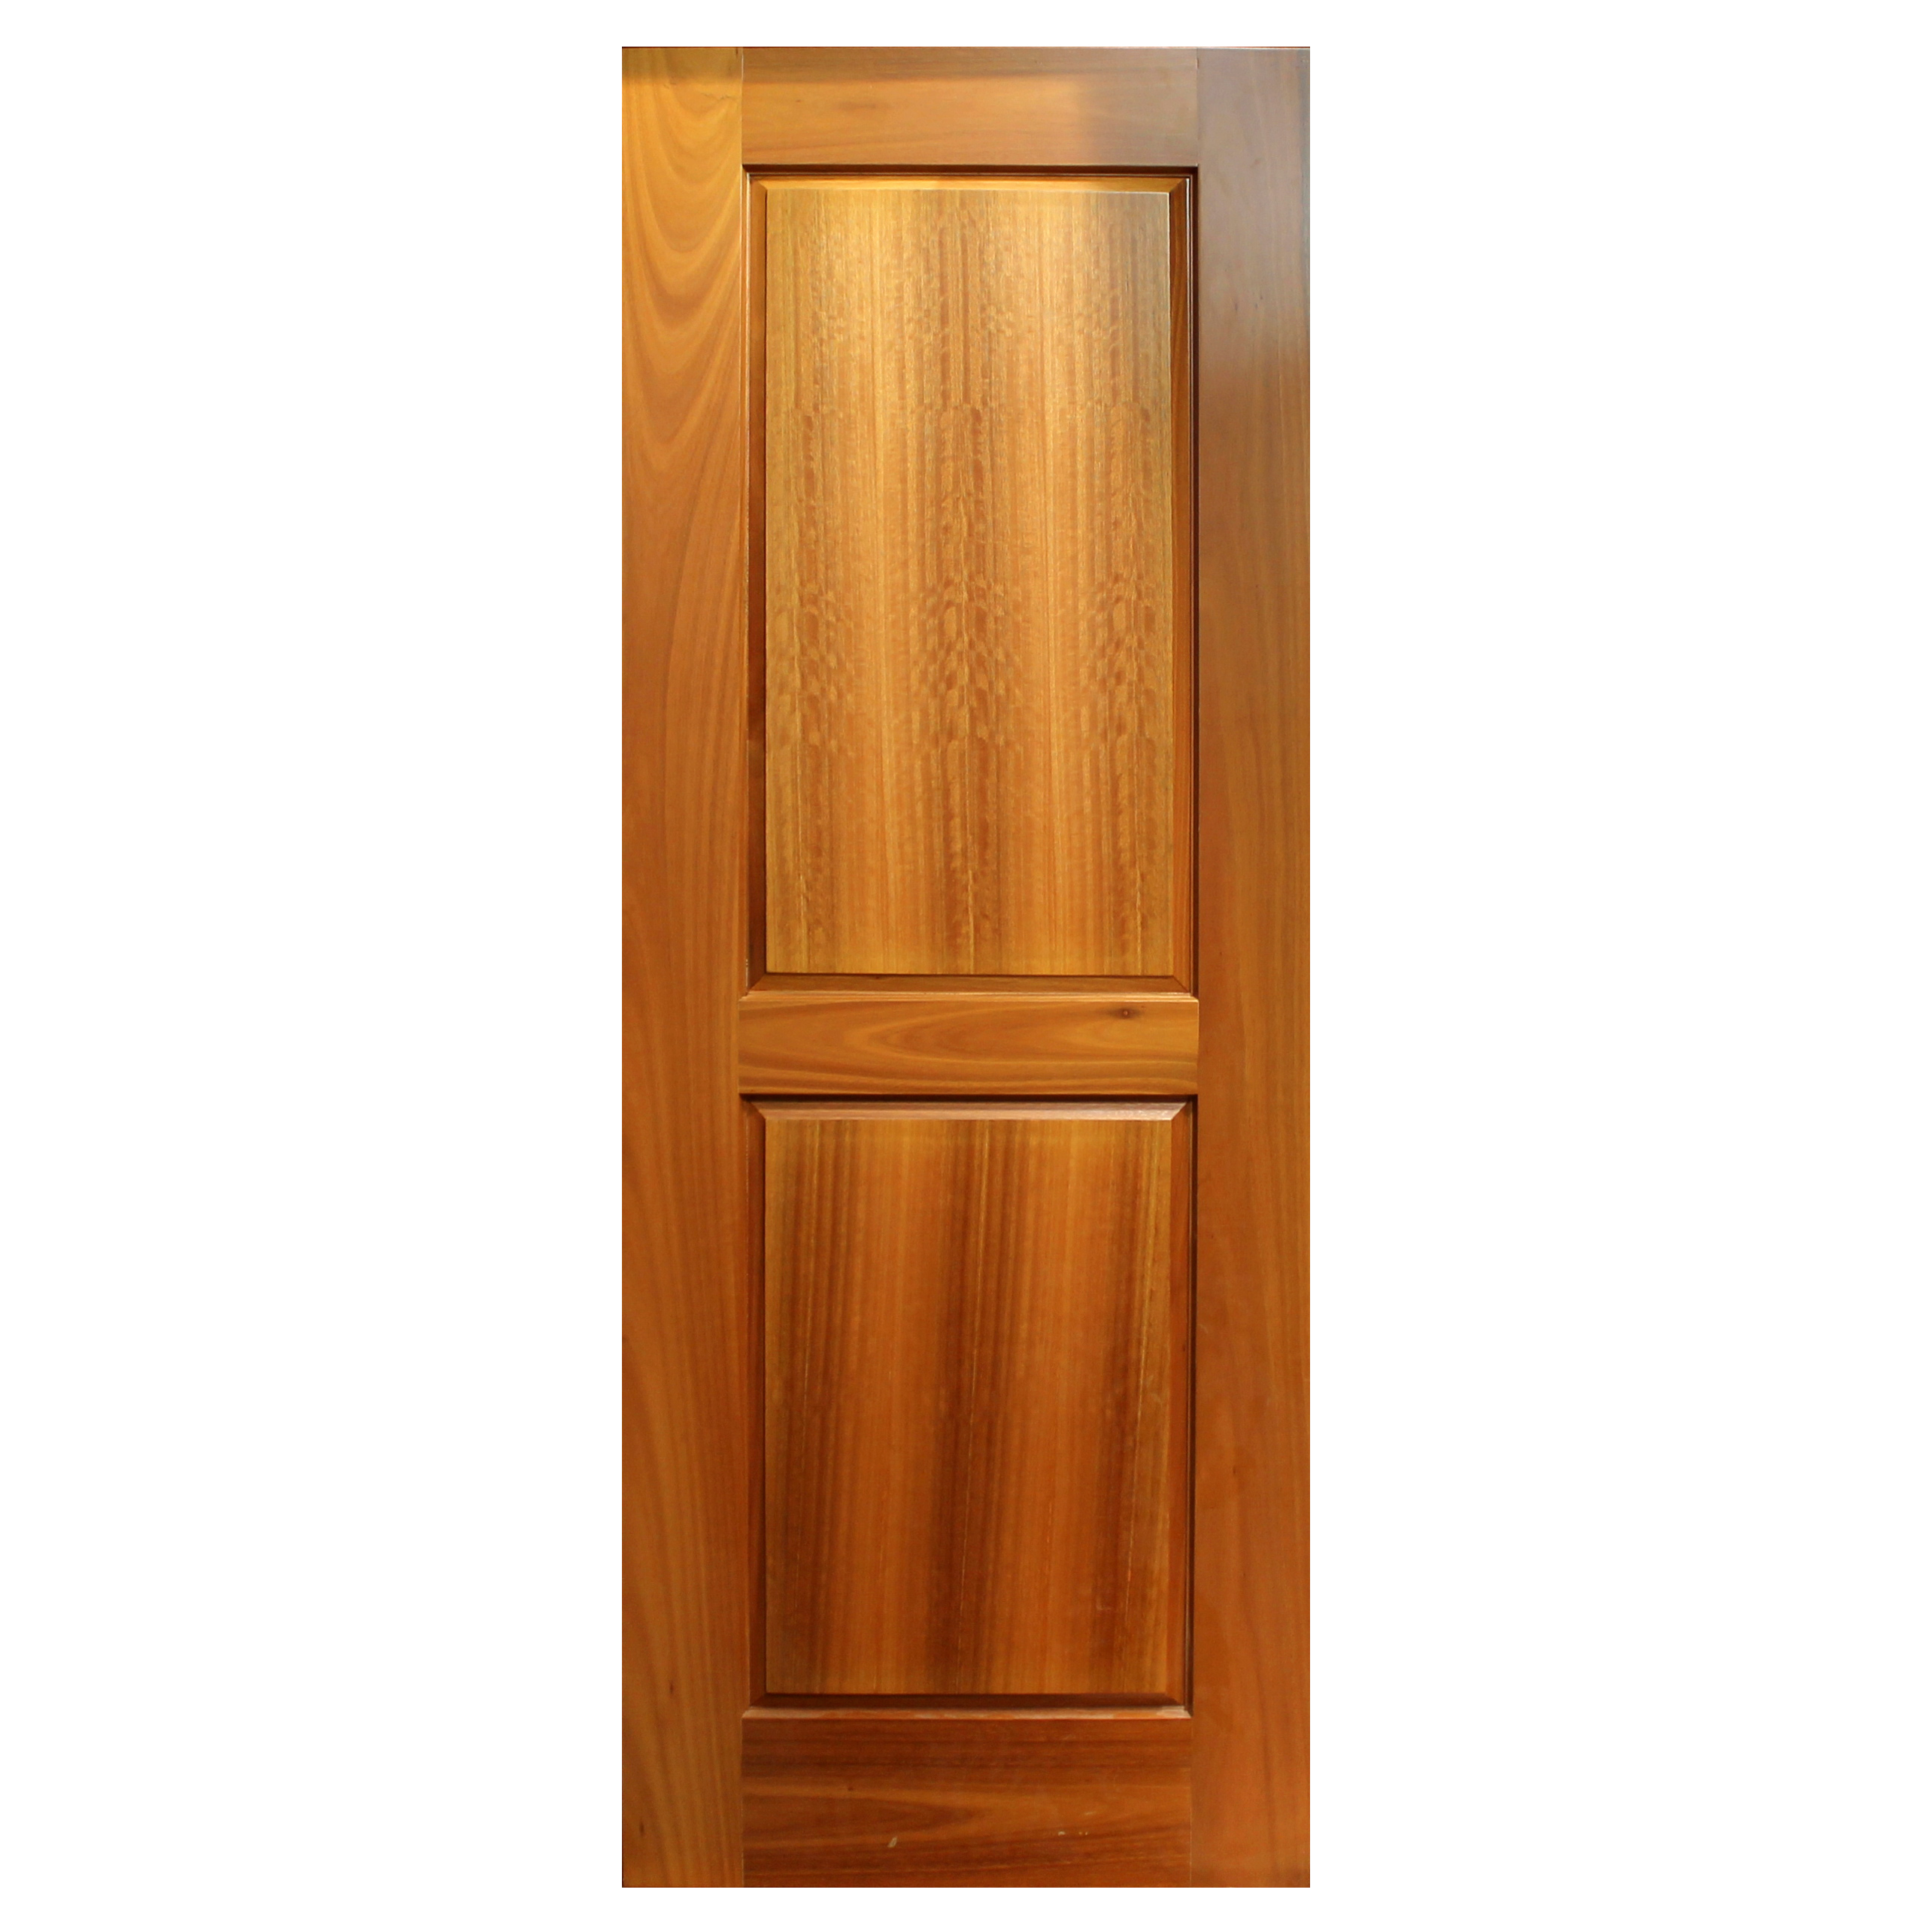 Wood door puertas de madera australis wood puertas de for Entrance doors